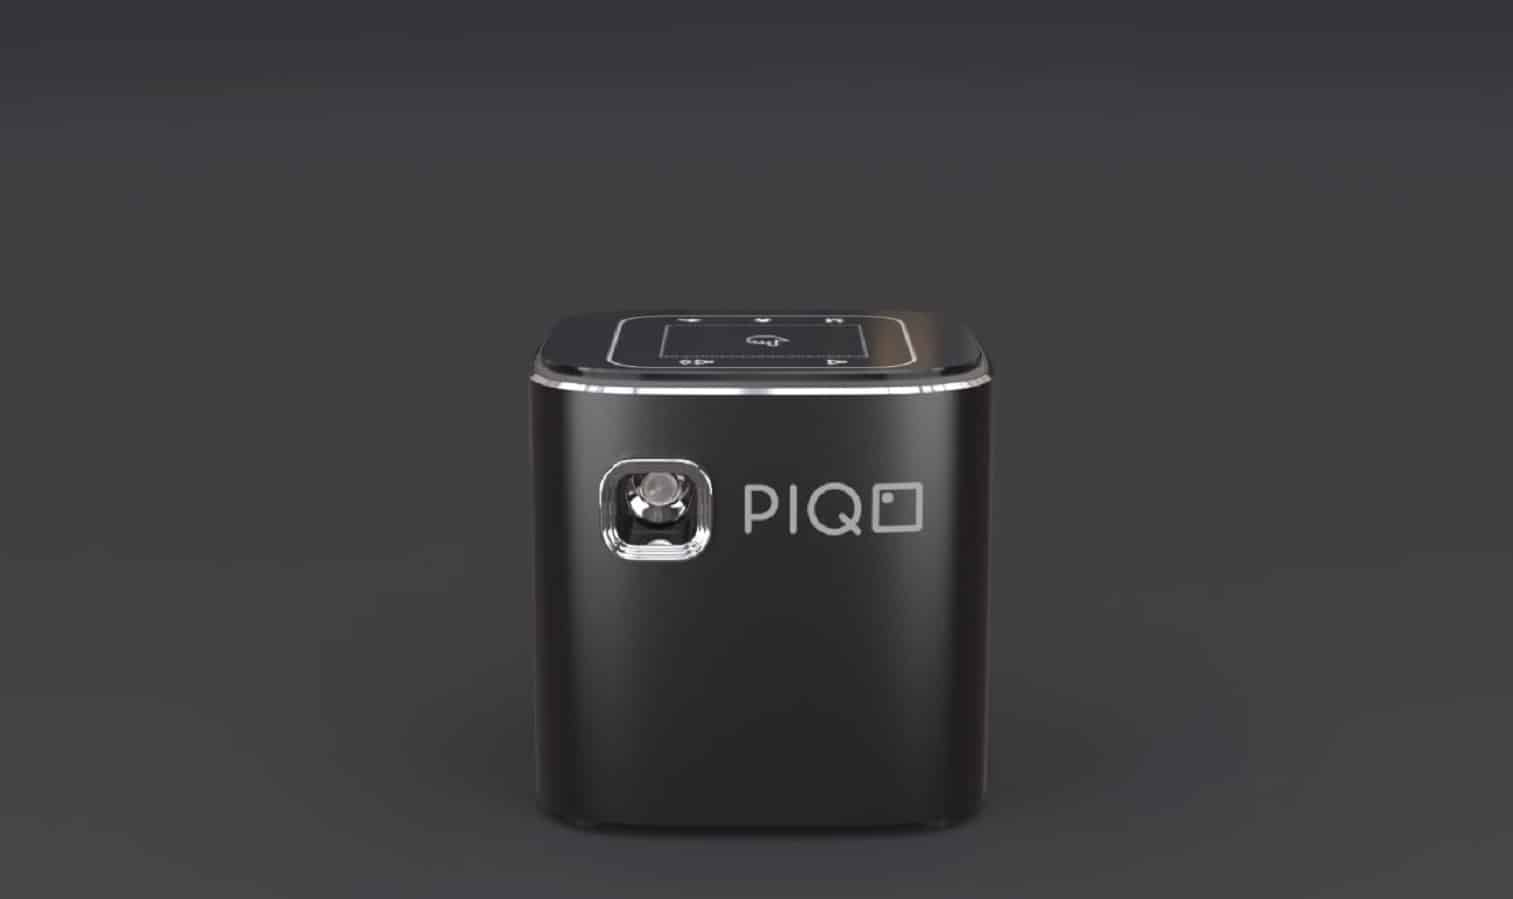 piqo projector on grey background